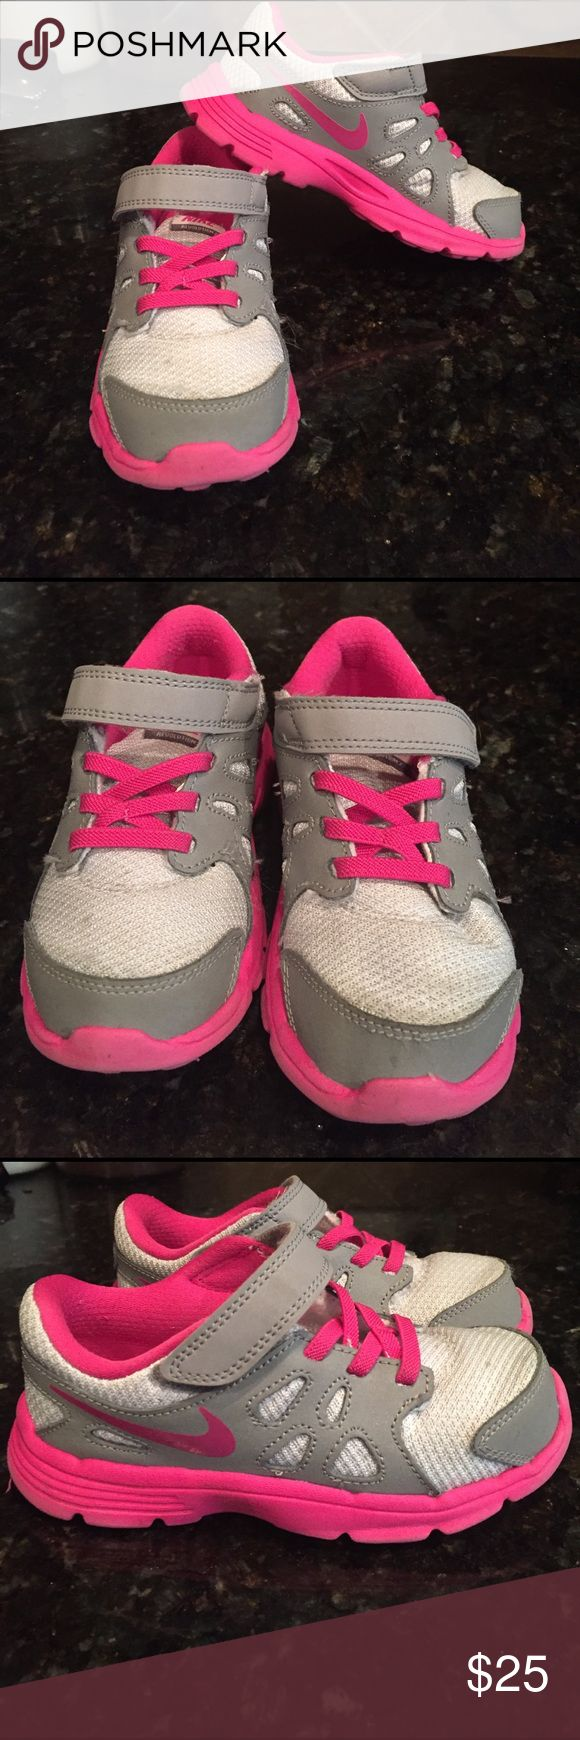 Girls Nike revolution 2 shoes size 10 Cute pair of girls gray and bright pink Nike shoes size 10. Worn only a few times. Pics don't do them justice. See pics for exact condition. From clean   smoke free home. Nike Shoes